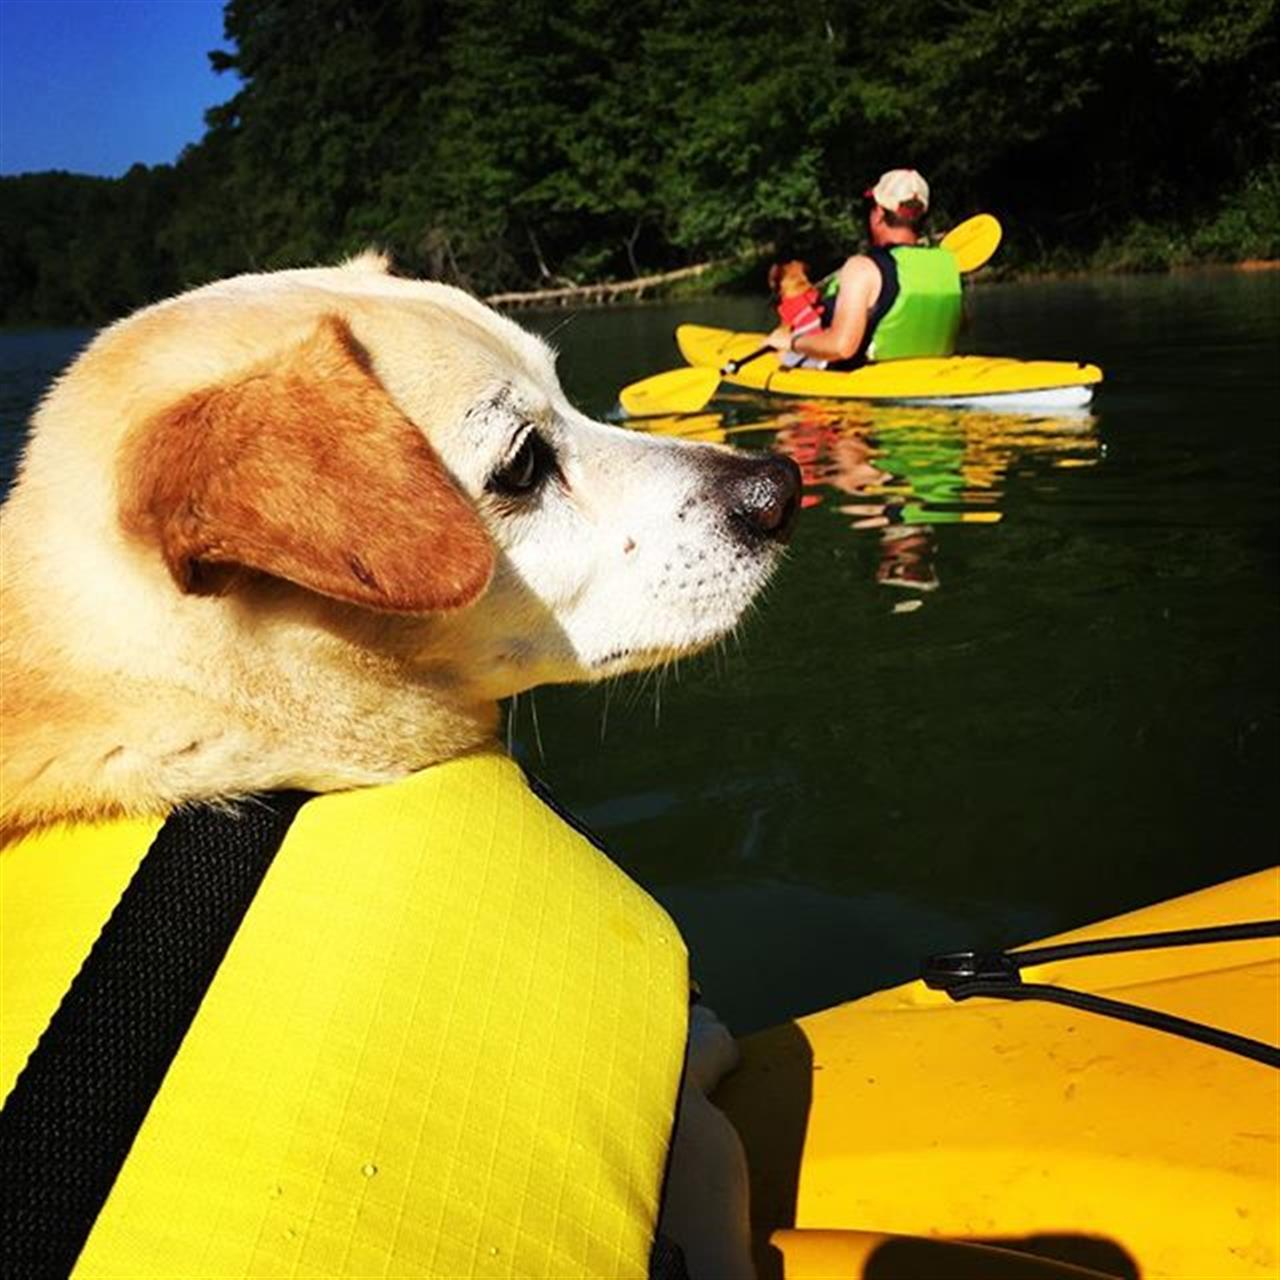 No walk for this pup this morning, just a trip on the lake. #kayakingwithdogs #boonecarlsons #leadingrelocal #boonenc #blowingrocknc